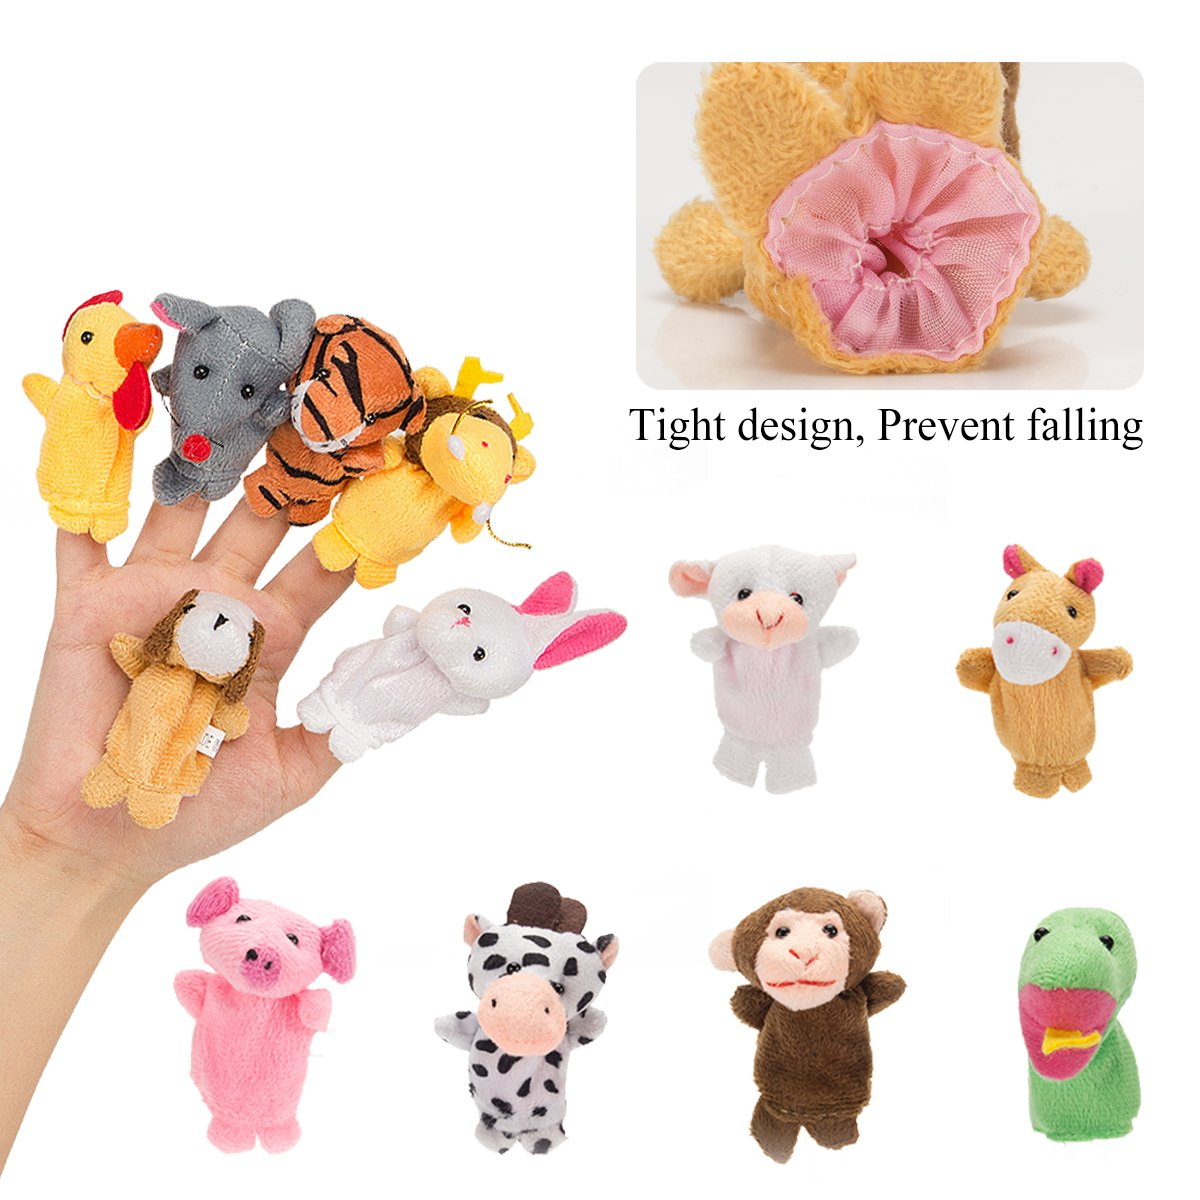 Biubee 28 PCS Finger Puppets Animal family Fruit Toys for Toddlers Kids Adults - 12 Farm Animals + 6 Family Members + 10 Fruits for Story Telling, Role Play, Great Novelty Educational Toys Set by Biubee (Image #5)